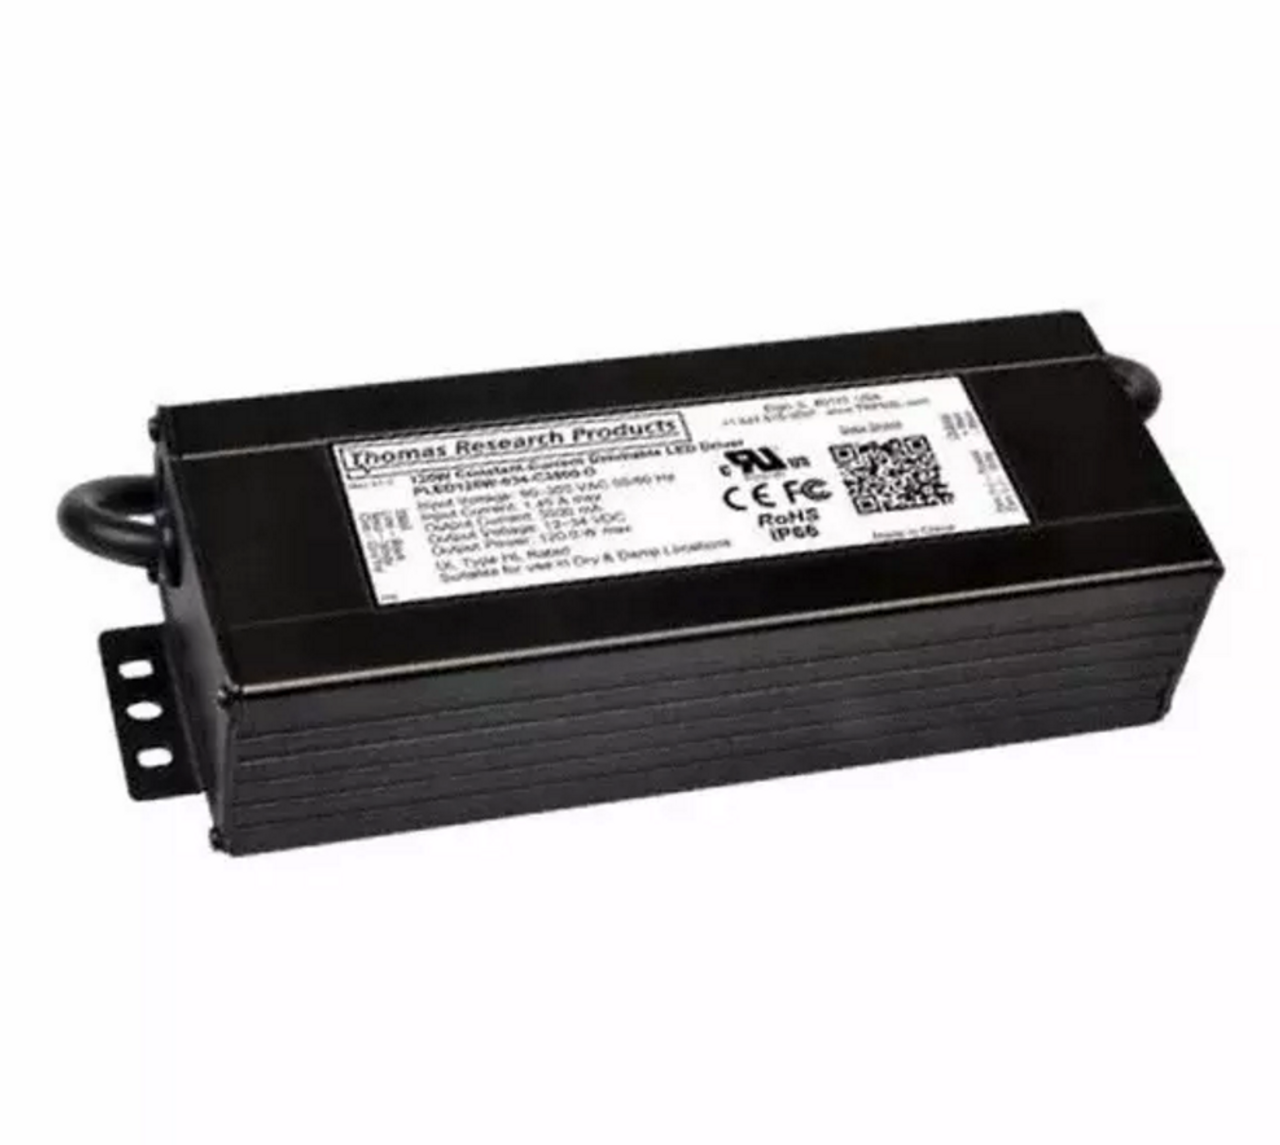 Pled150w 071 C2100 D Thomas Research Products Led Power Supply Driver Constant Current Dimming 50w 700ma